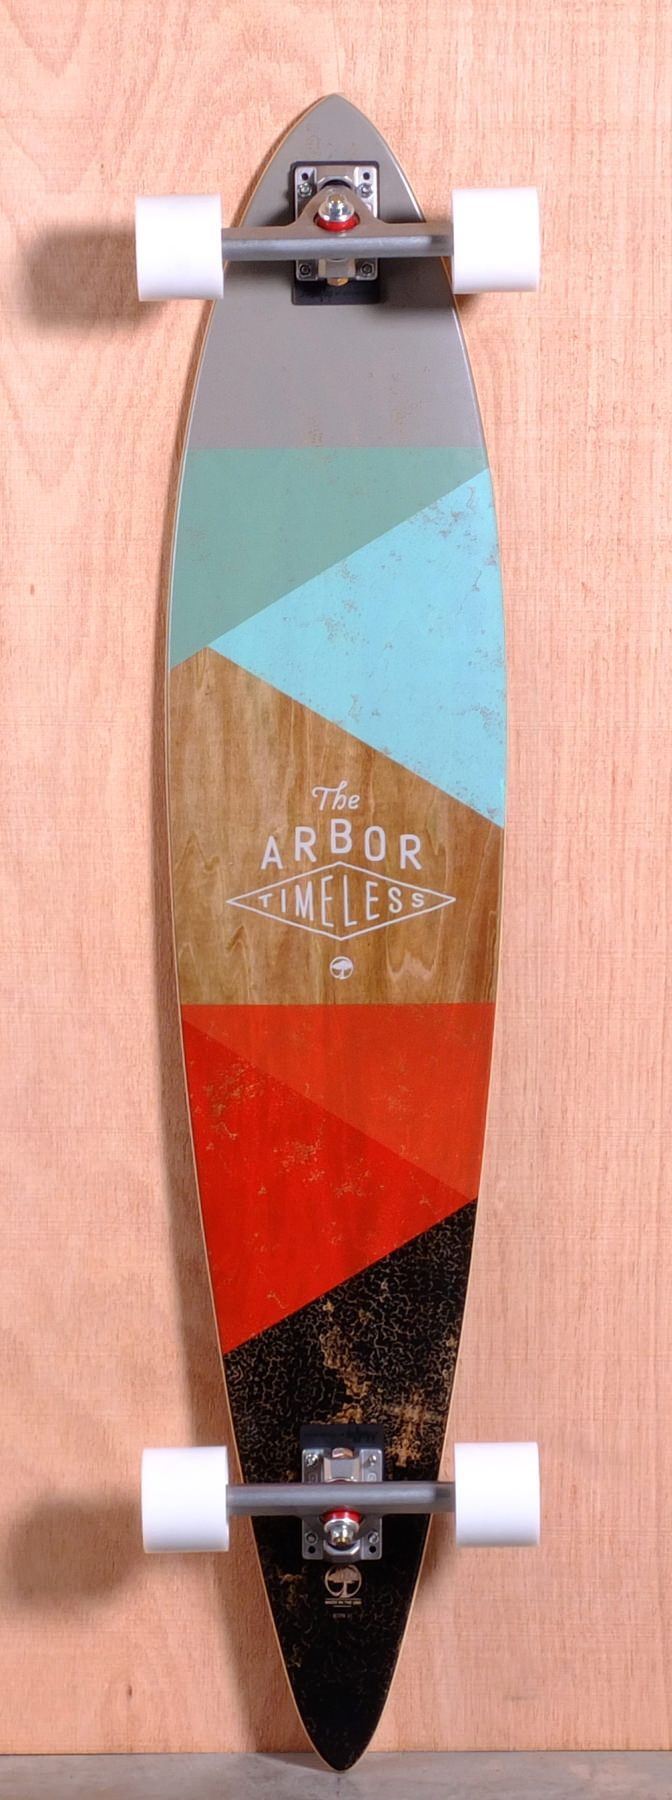 "The Arbor Timeless Pin Koa Longboard Complete is designed for Carving and Cruising. Ships fully assembled and ready to skate!  Function: Carving, Cruising,  Features: Pintail, Concave  Material: 7 Ply Sustainable Maple, Sustainable Koa Topsheet  Length: 46""  Width: 9.5""  Wheelbase: 32.25""  Thickness: 7/16""  Hole Pattern: New School  Grip: Clear"